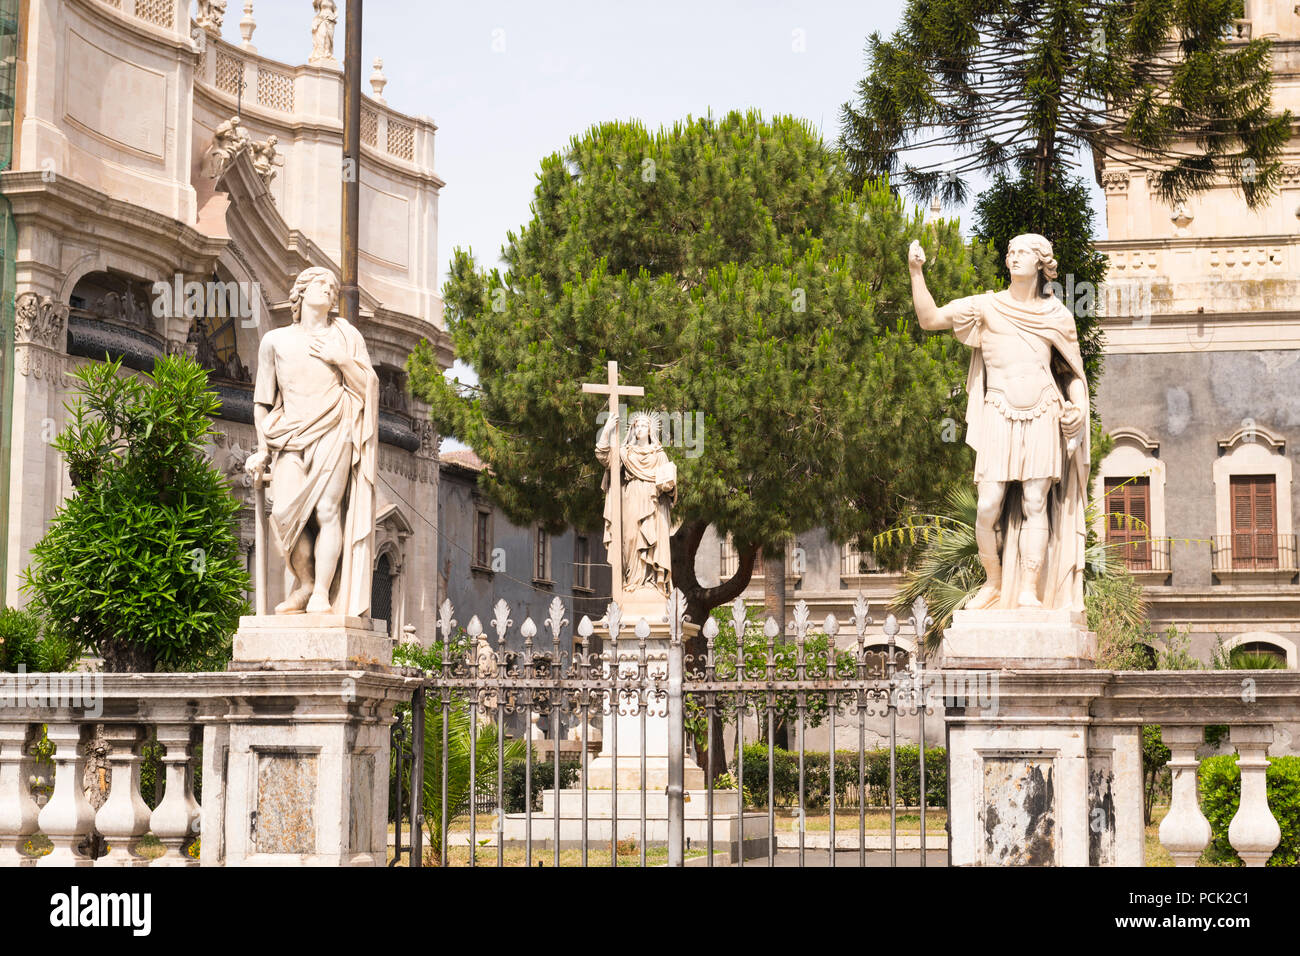 Italy Sicily Catania Piazzo Duomo Baroque Cathedral patron saint Sant Agata G B Vaccarini stone statues sculptures garden park grounds metal railings - Stock Image